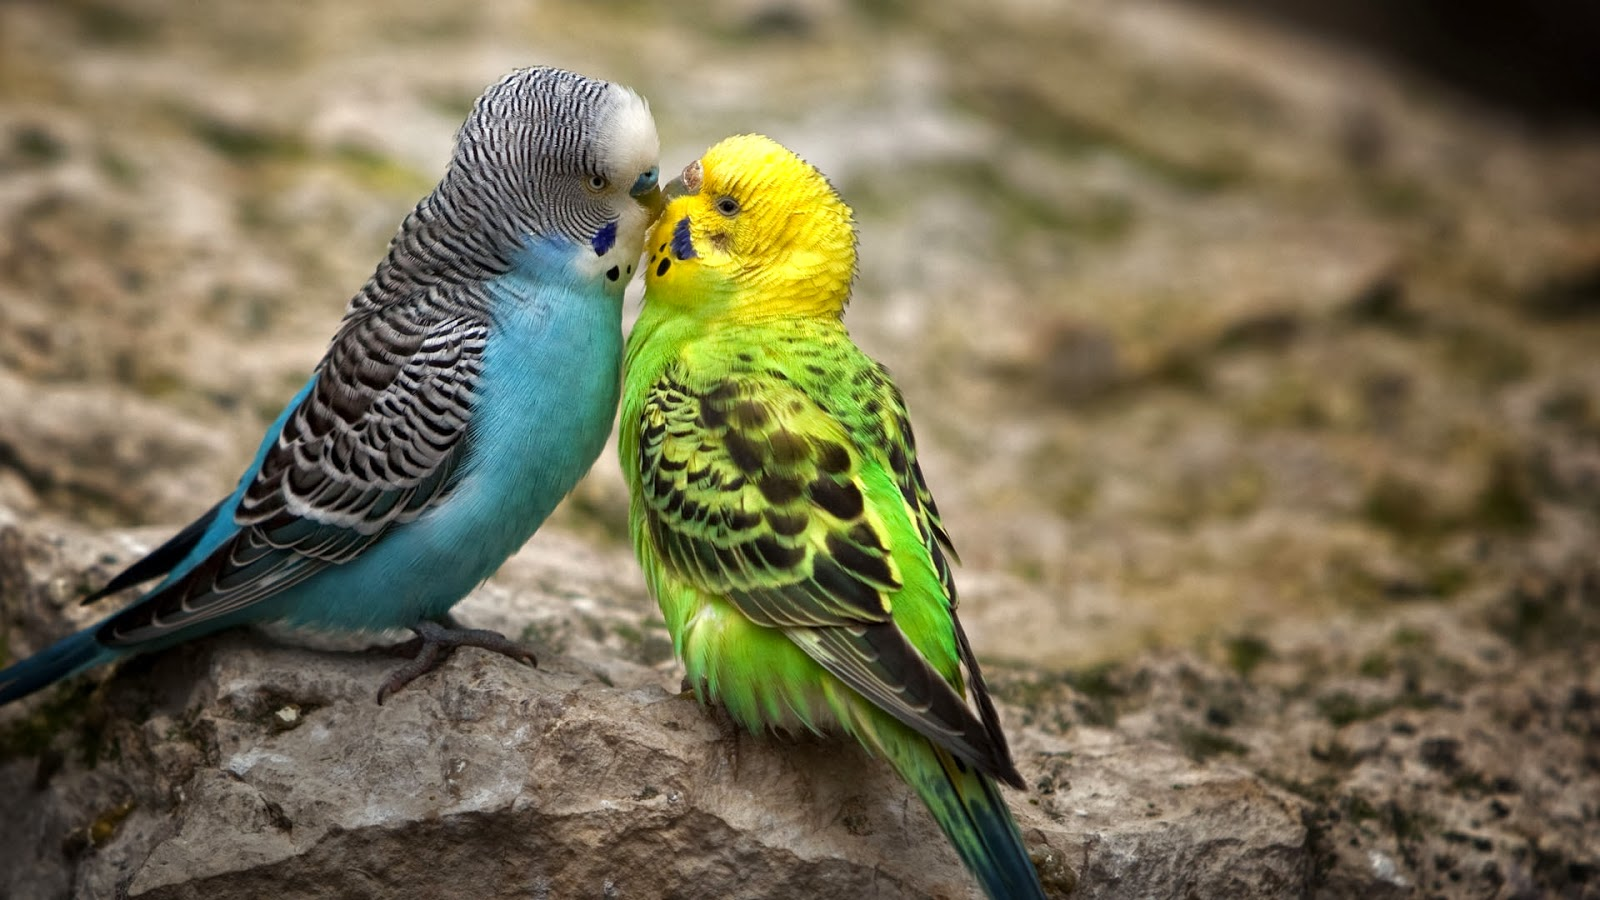 Love Birds Wallpaper In Hd : cute Little Love couple Pictures HD Free Download PIXHOME